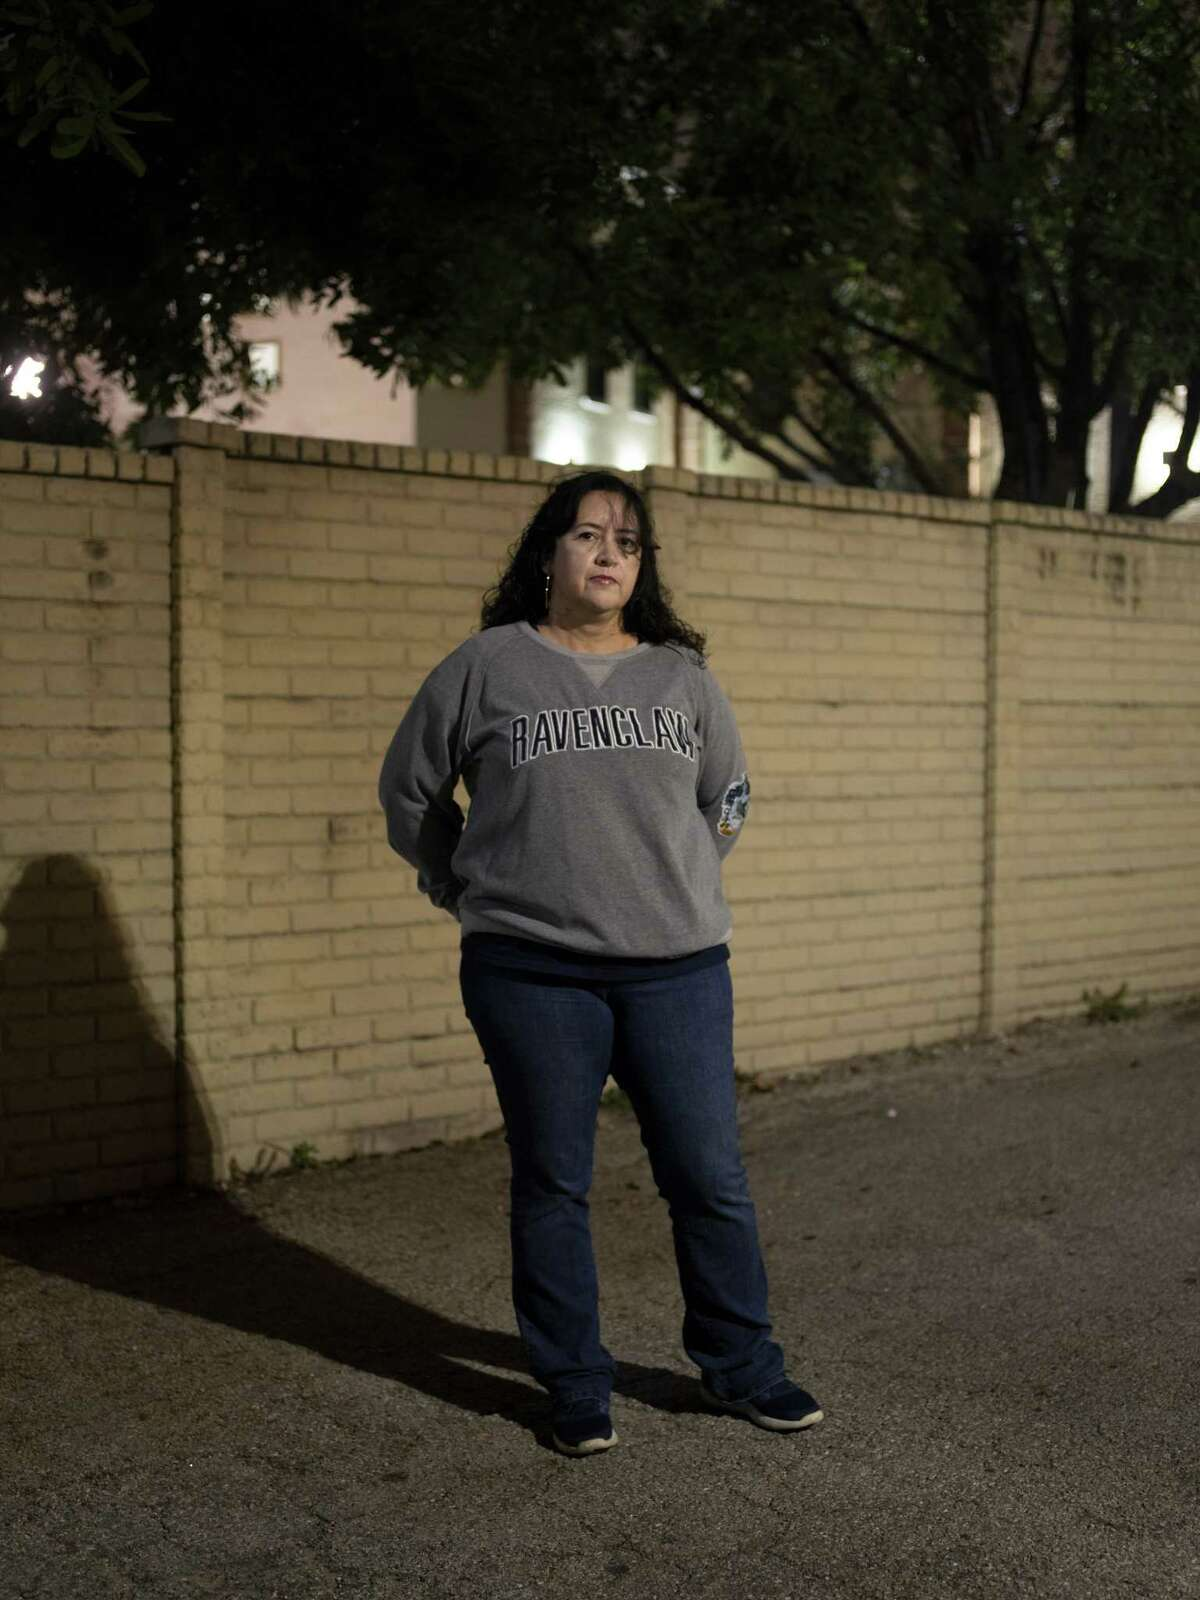 Celina Herrera, a former student at Providence Catholic School is among the victims speaking out against the alleged sexual relationships with a former teacher at Providence, Ruben Calderon. Calderon was hired at Holy Cross in 2010 and was celebrated as a winning girls volleyball coach until he resigned Tuesday as the Providence investigation spread. Photographed on Thursday, November 8, 2018.